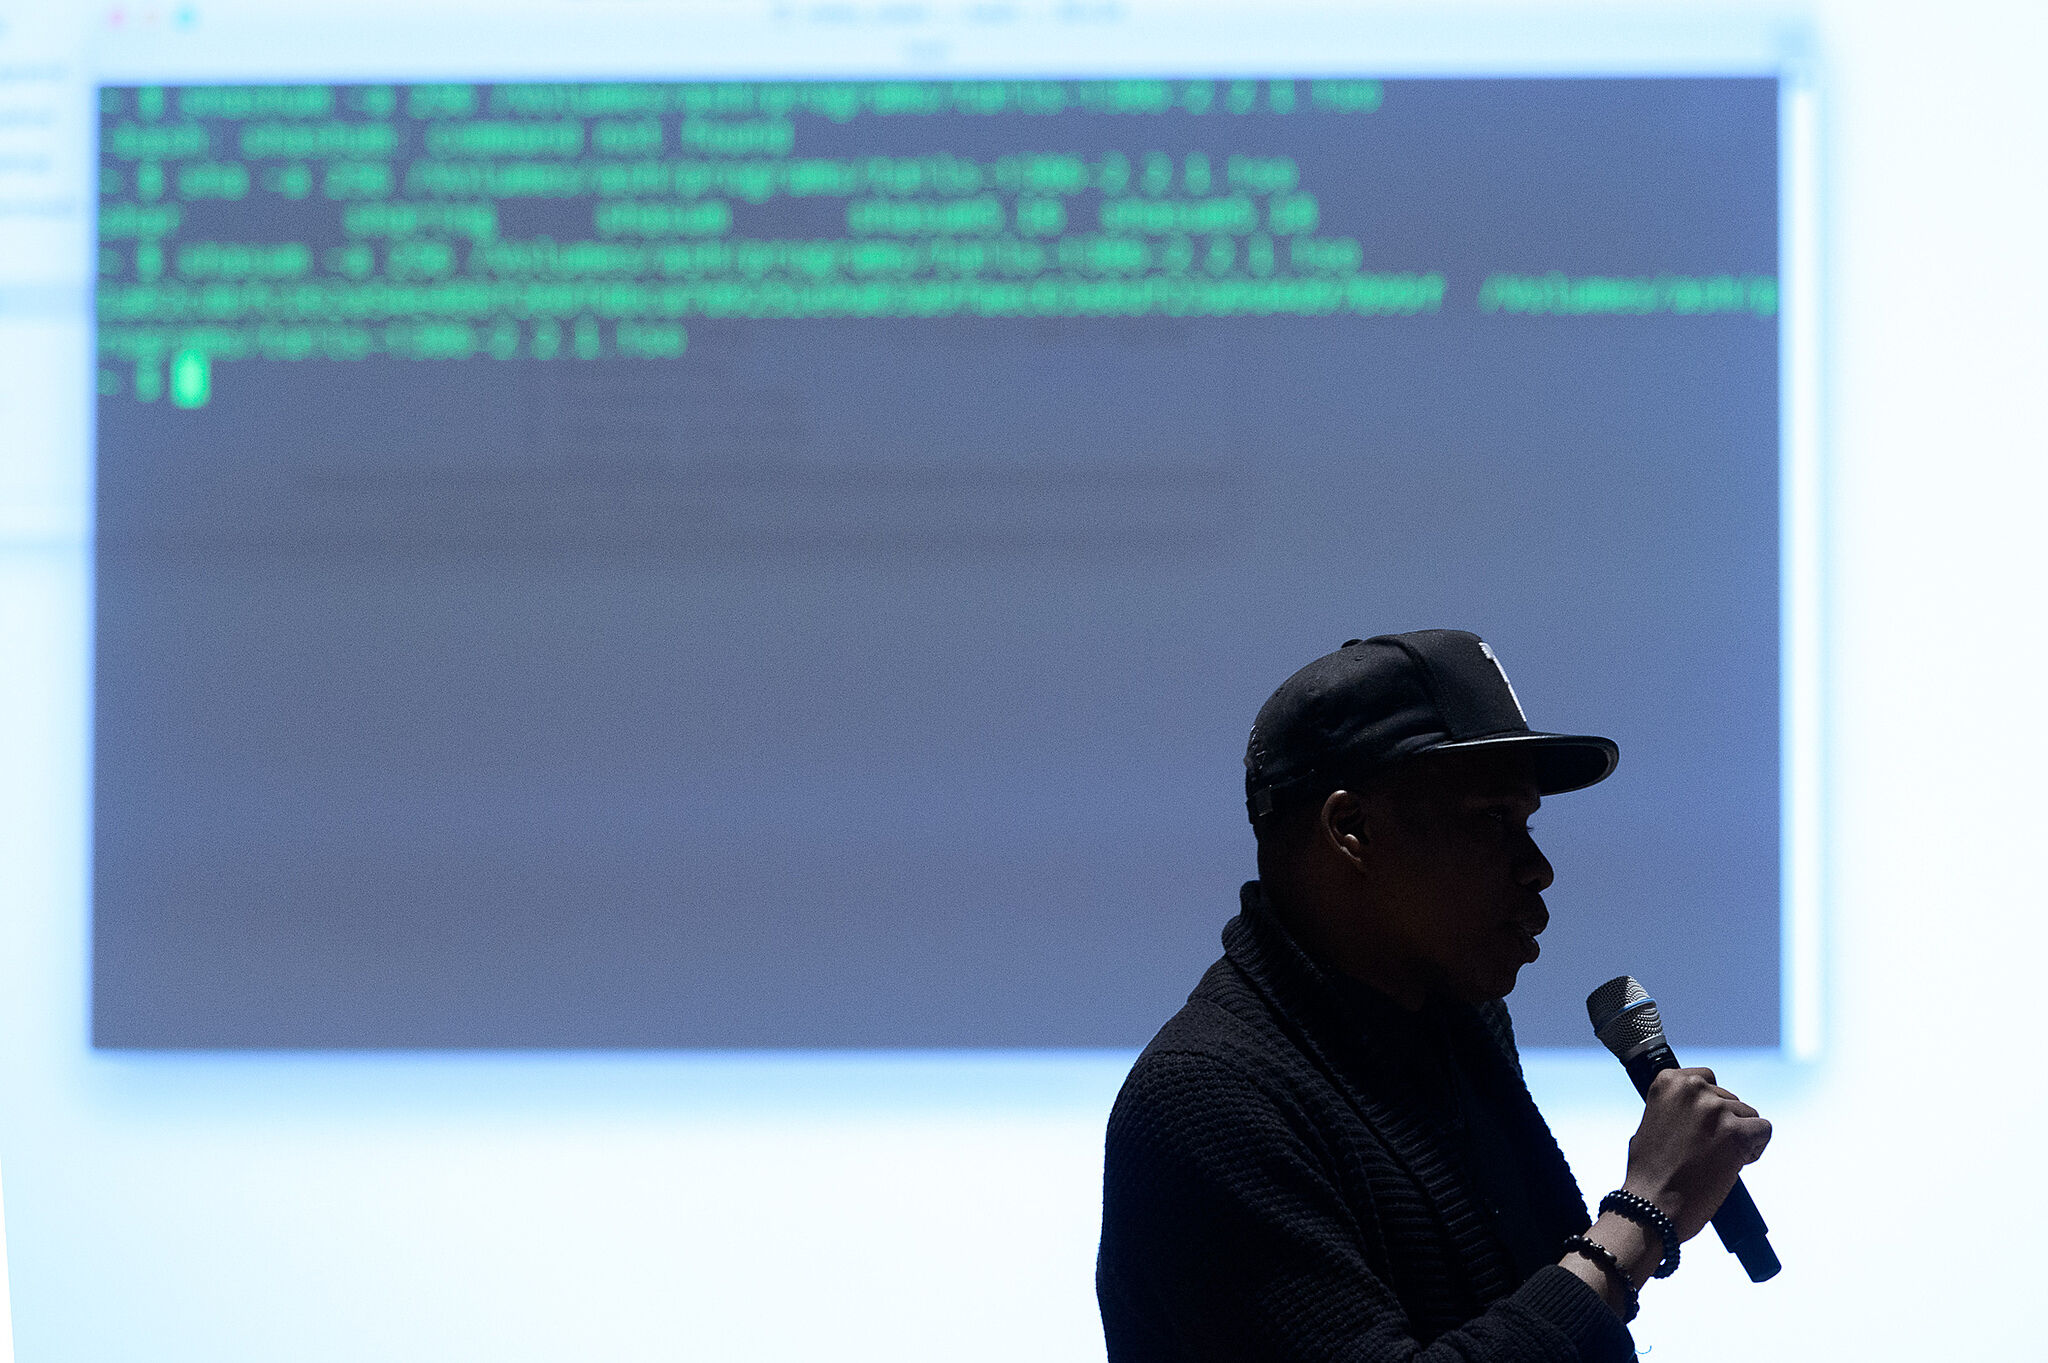 Matthew Mitchell leads a workshop in front of a projector displaying code